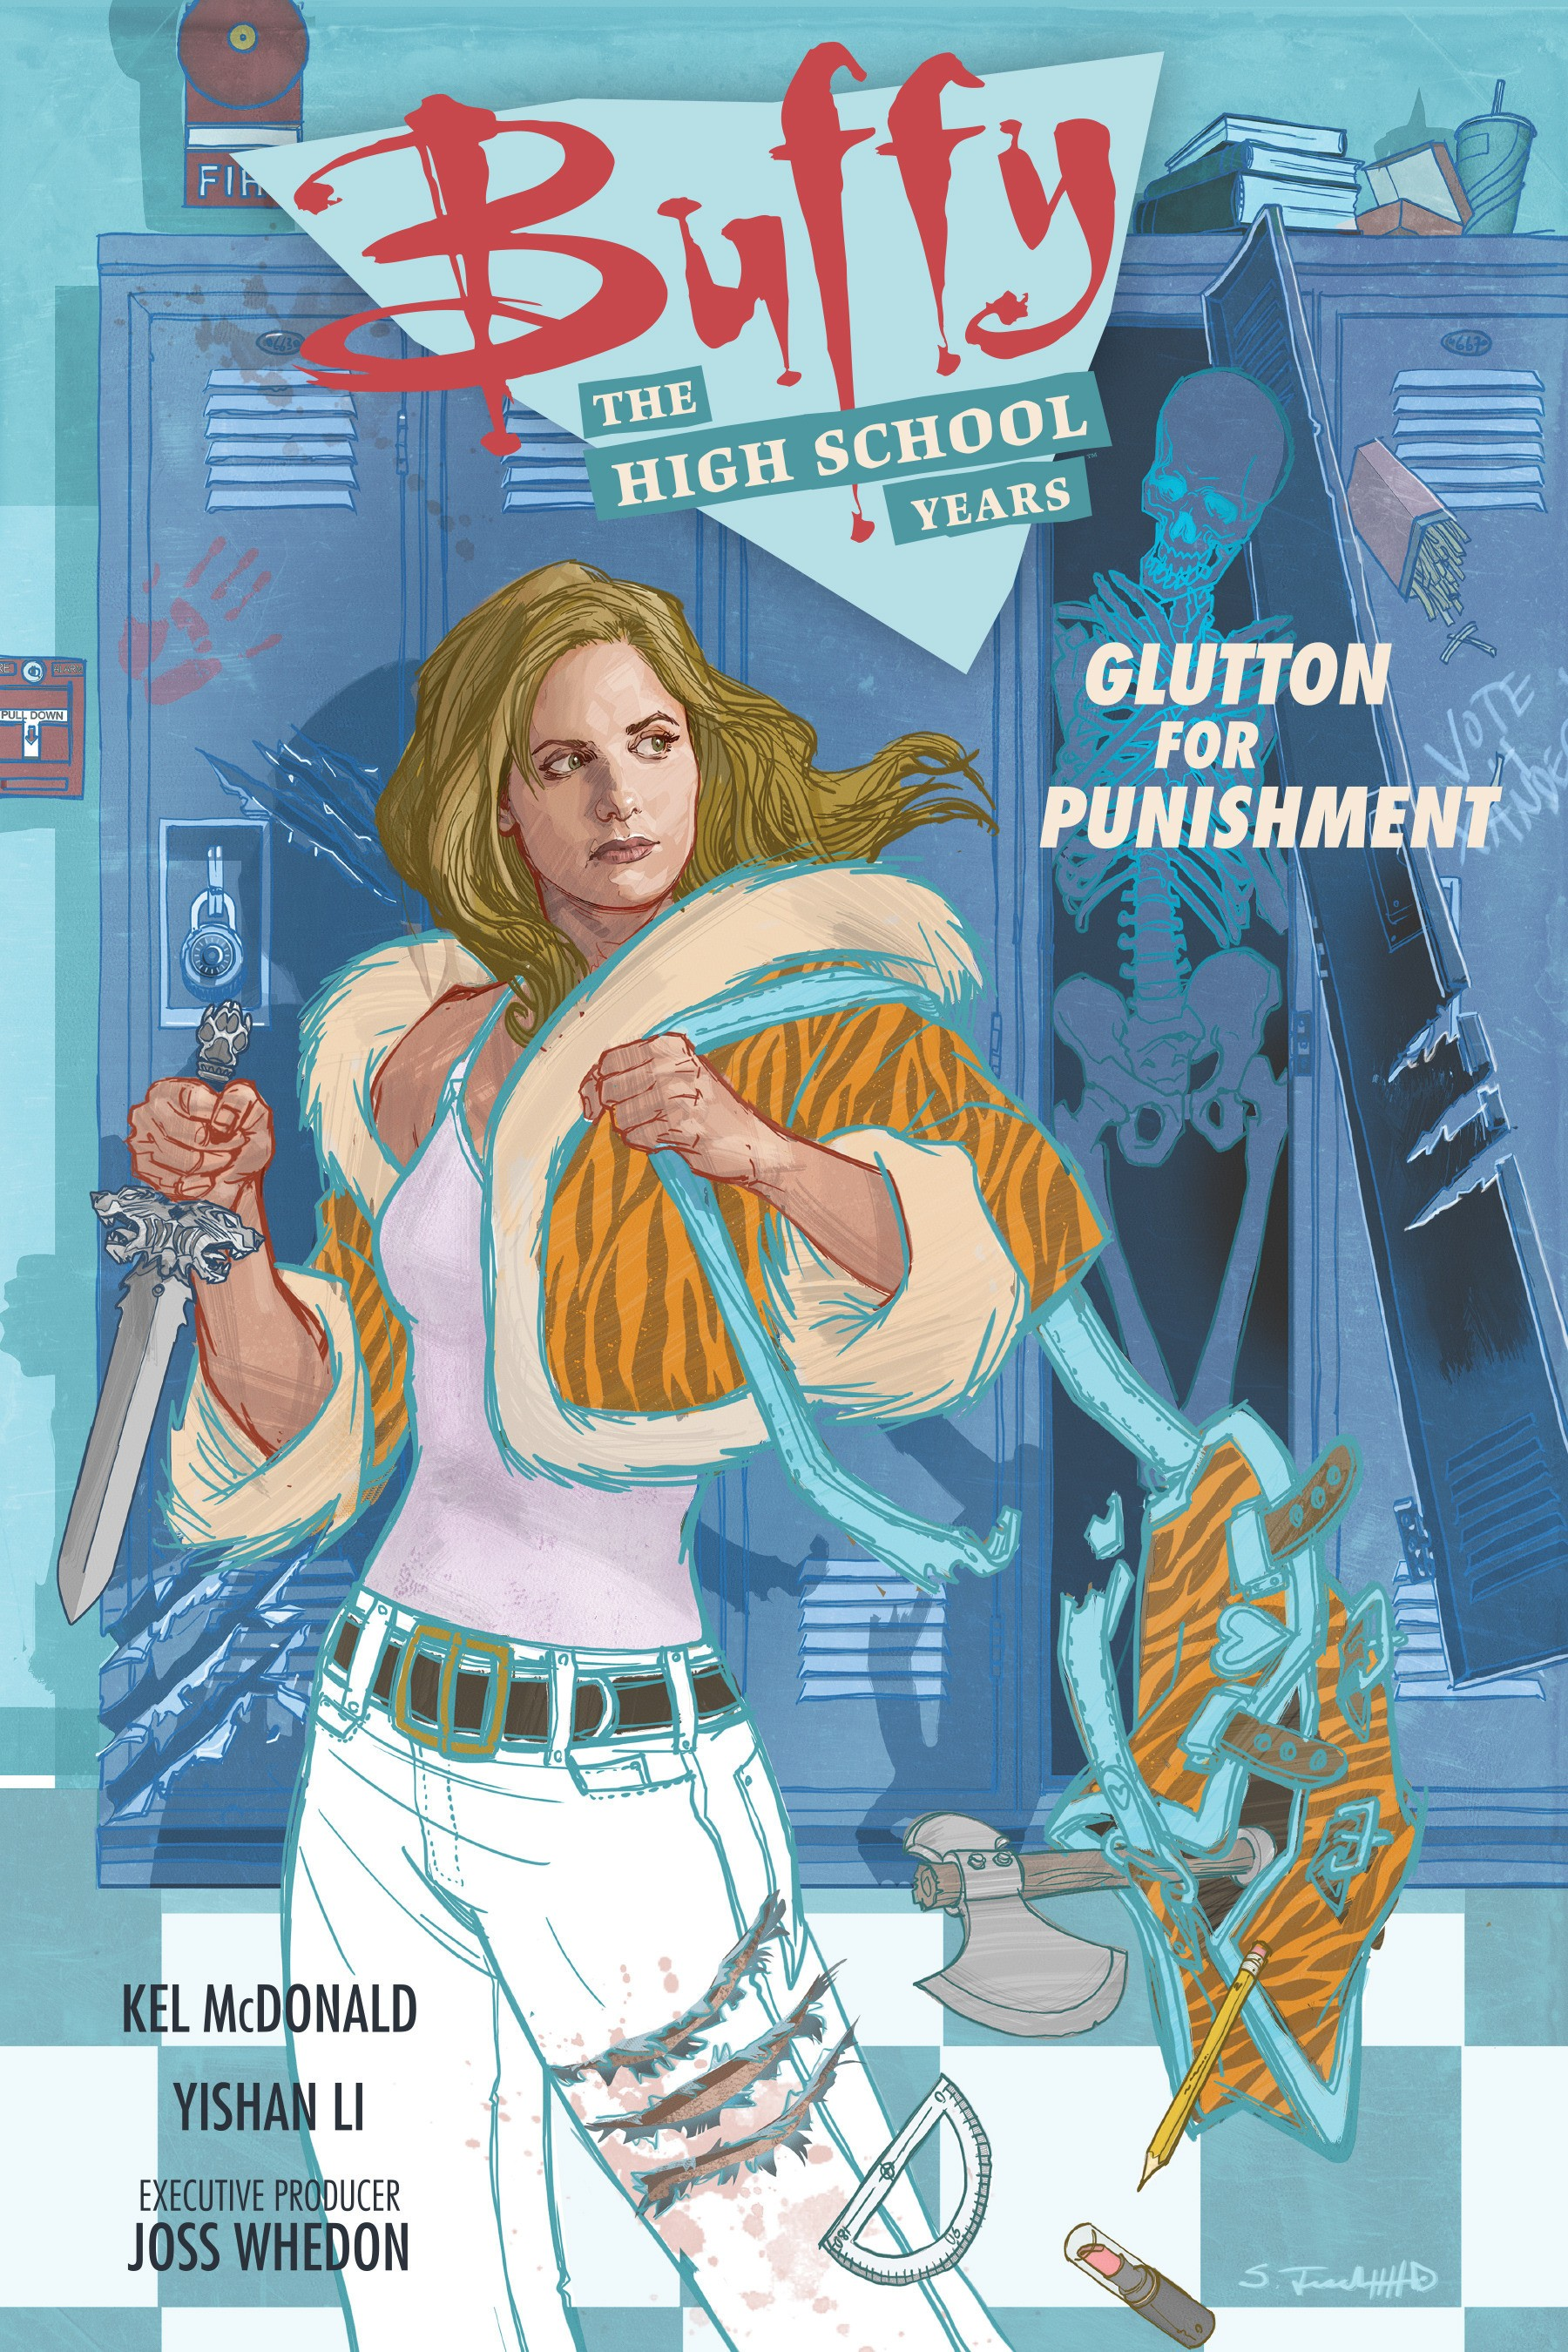 Buffy: The High School Years - Glutton For Punishment Full Page 1